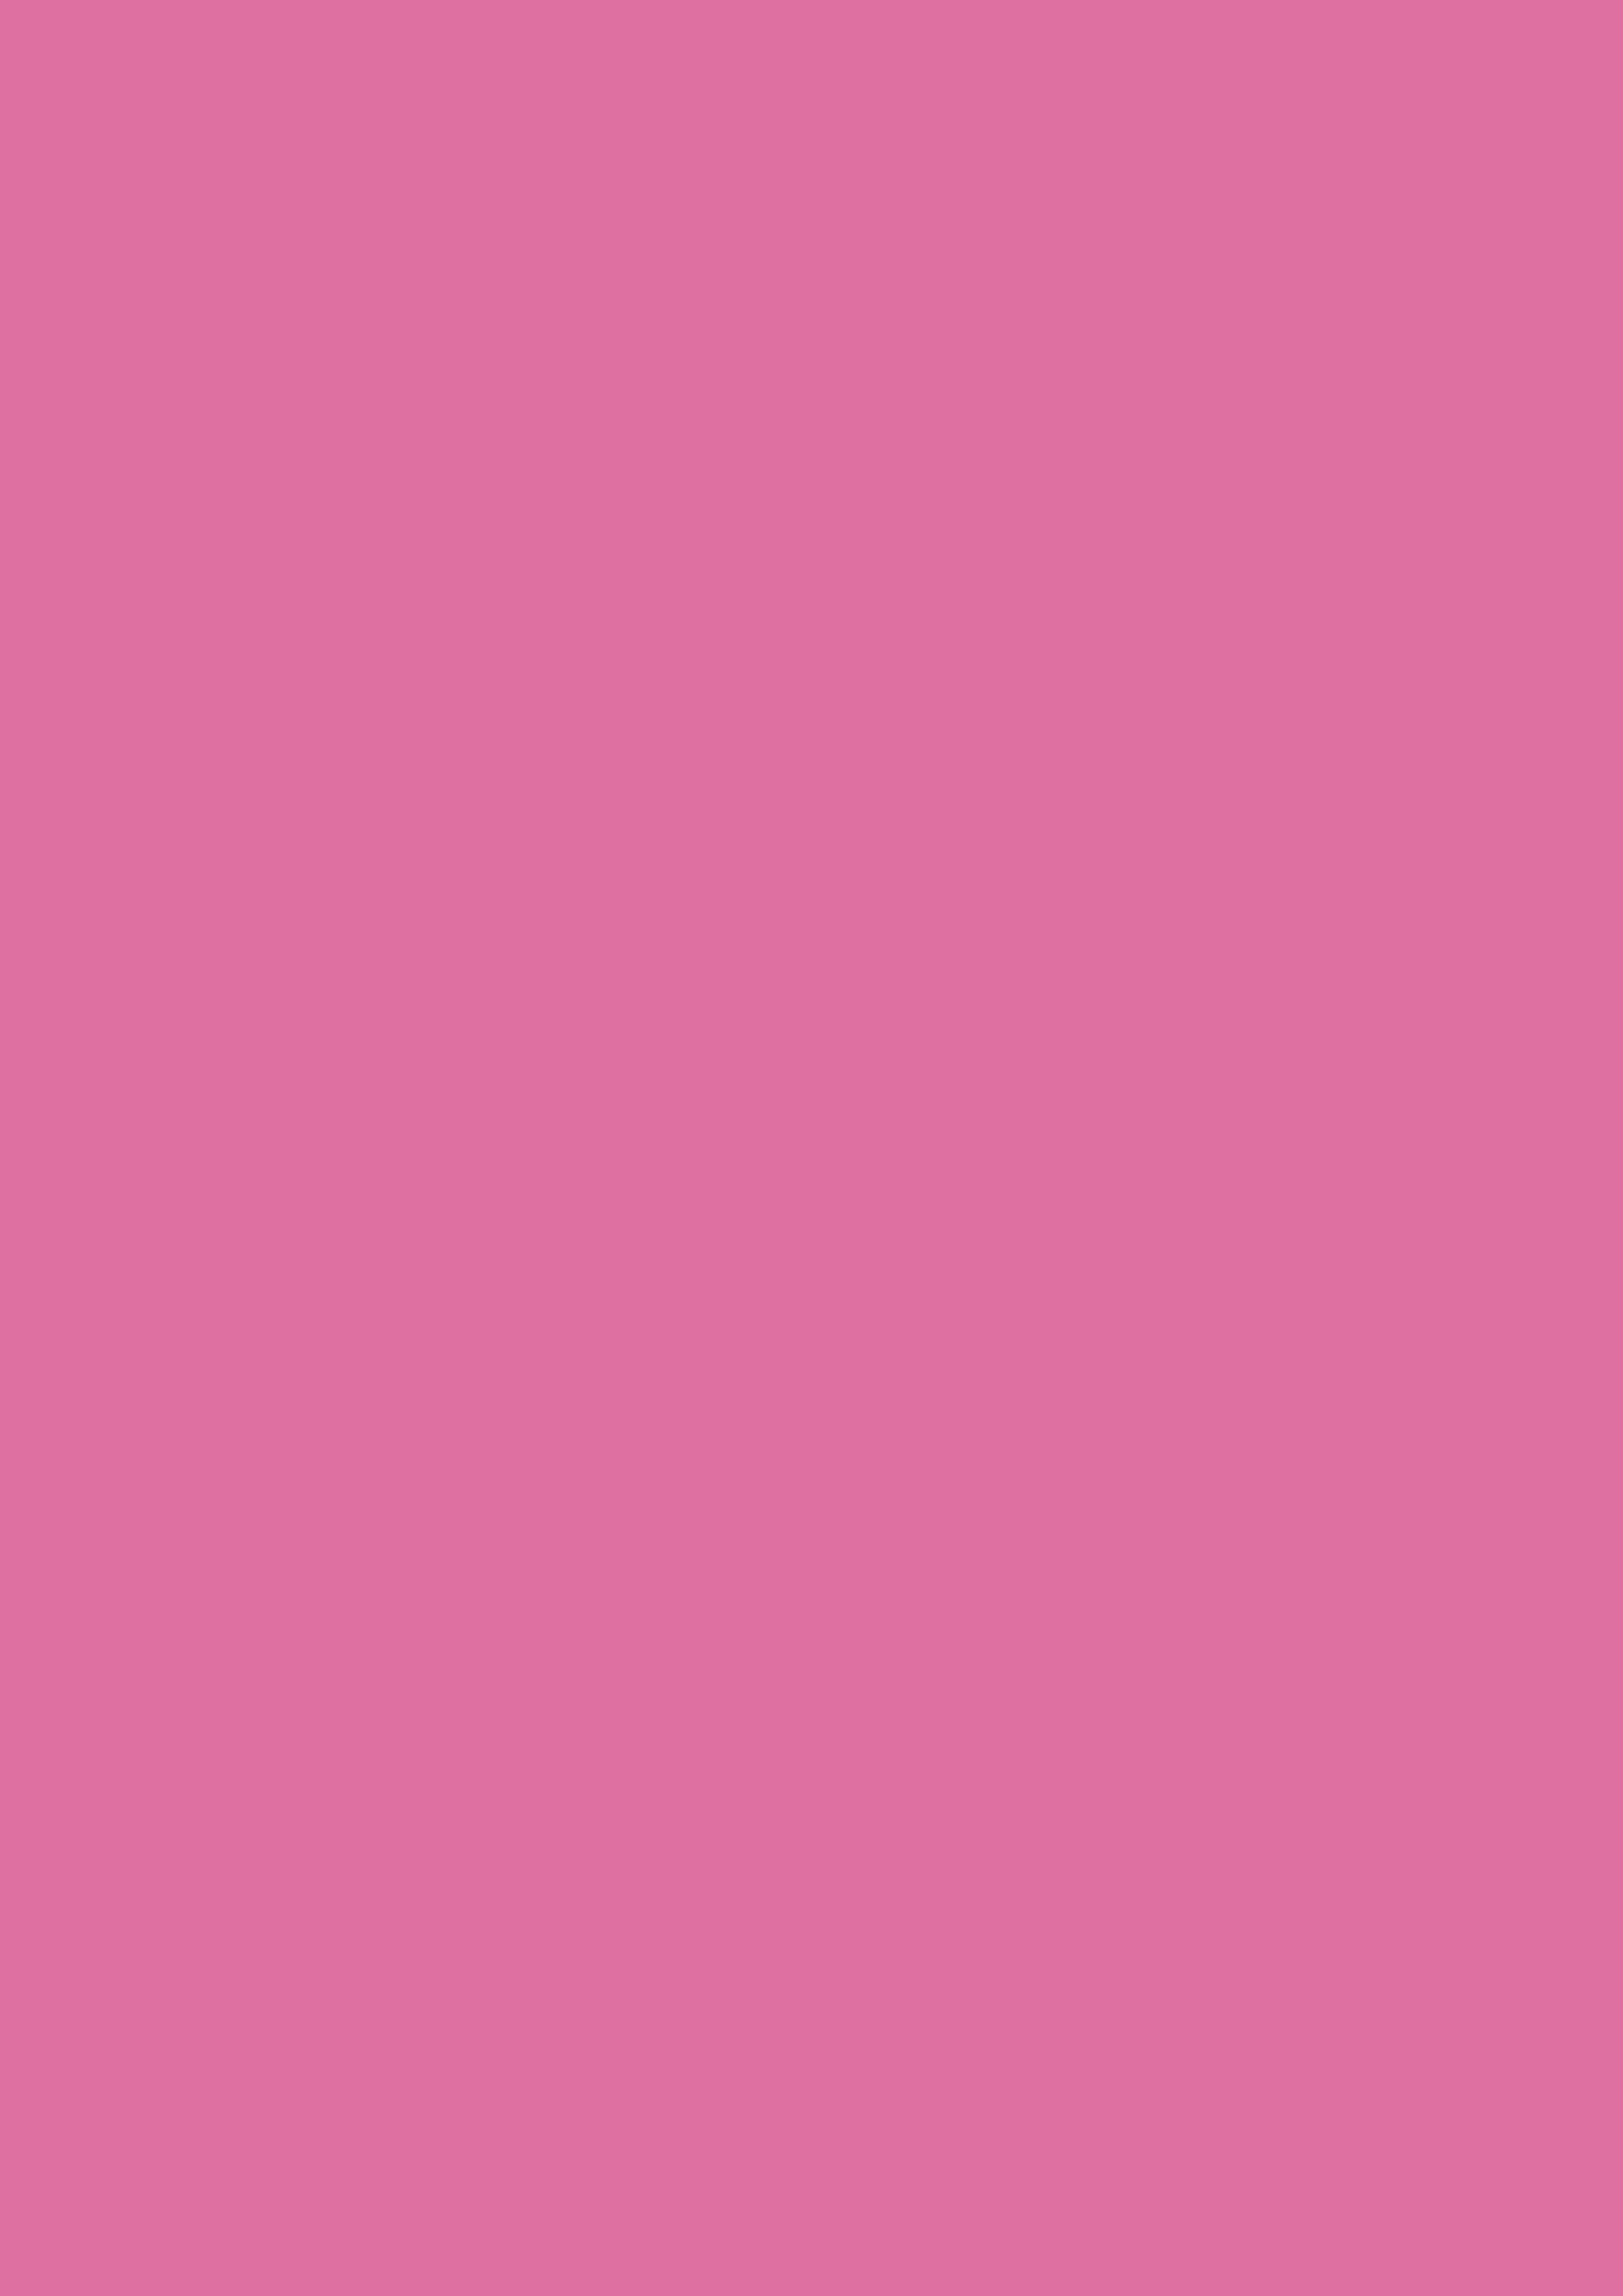 2480x3508 China Pink Solid Color Background